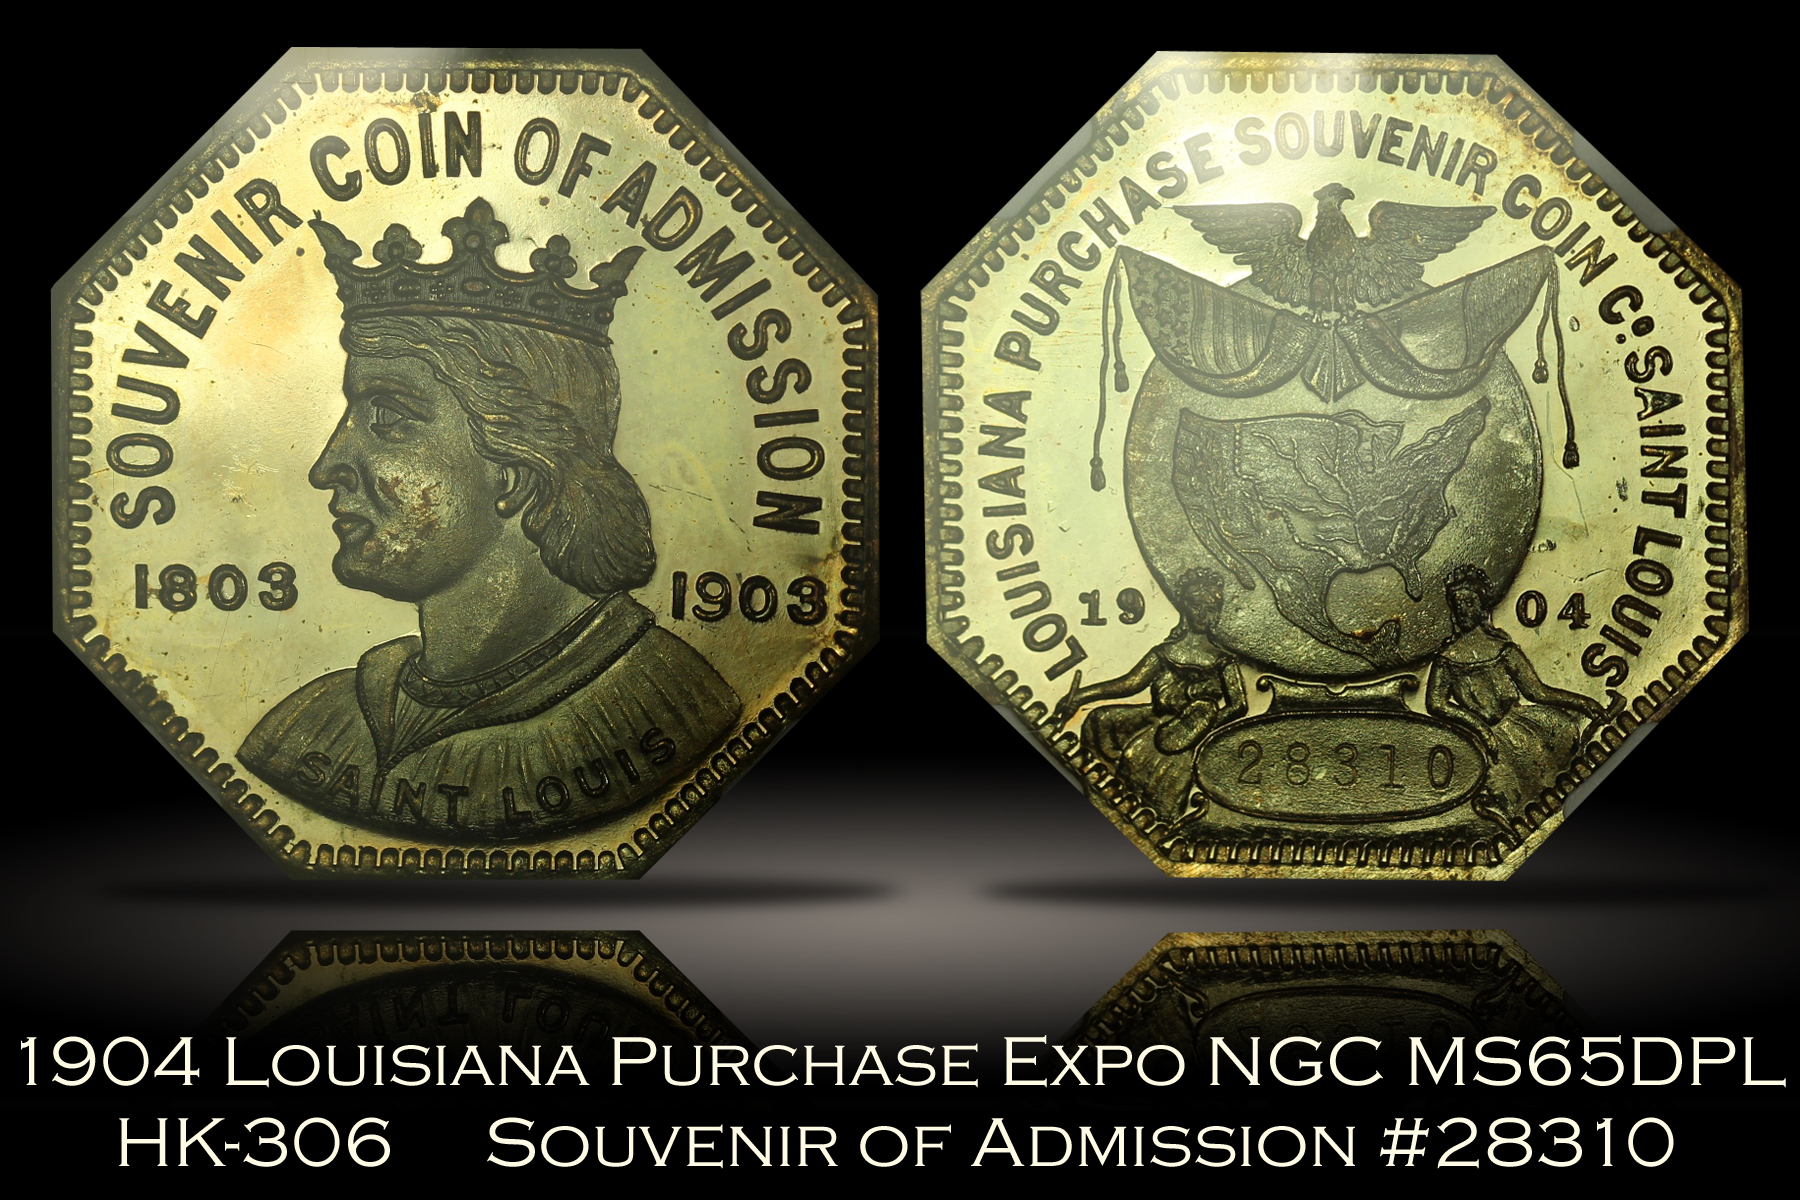 1904 Louisiana Purchase Expo Souvenir of Admission HK-306 NGC MS65DPL